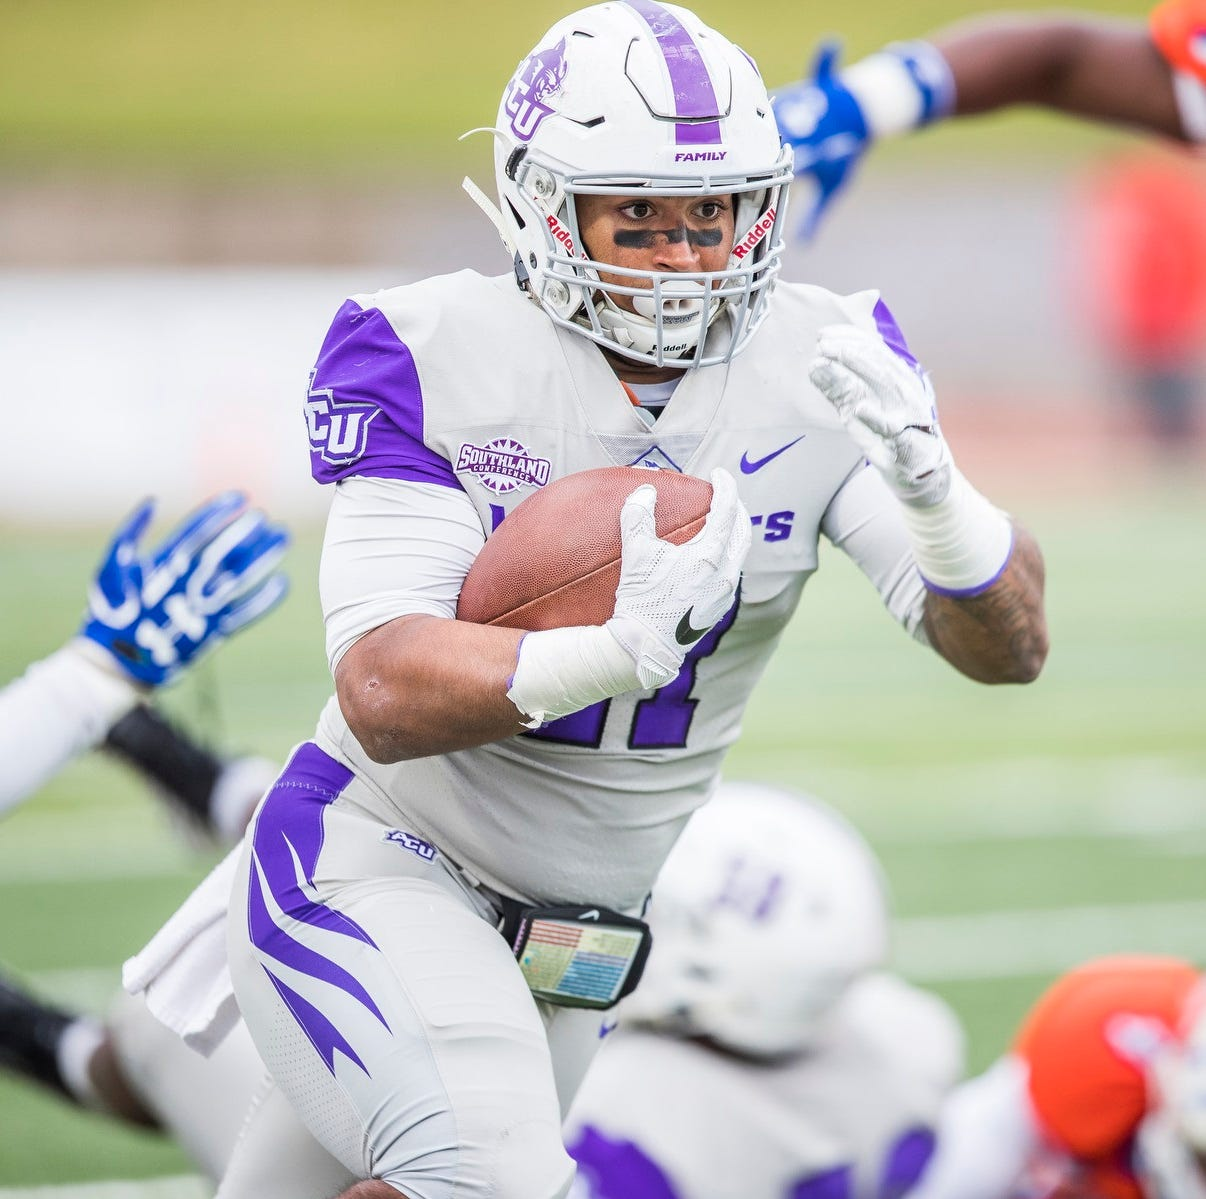 Abilene Christian knocks off Sam Houston State, keeps playoff hopes alive